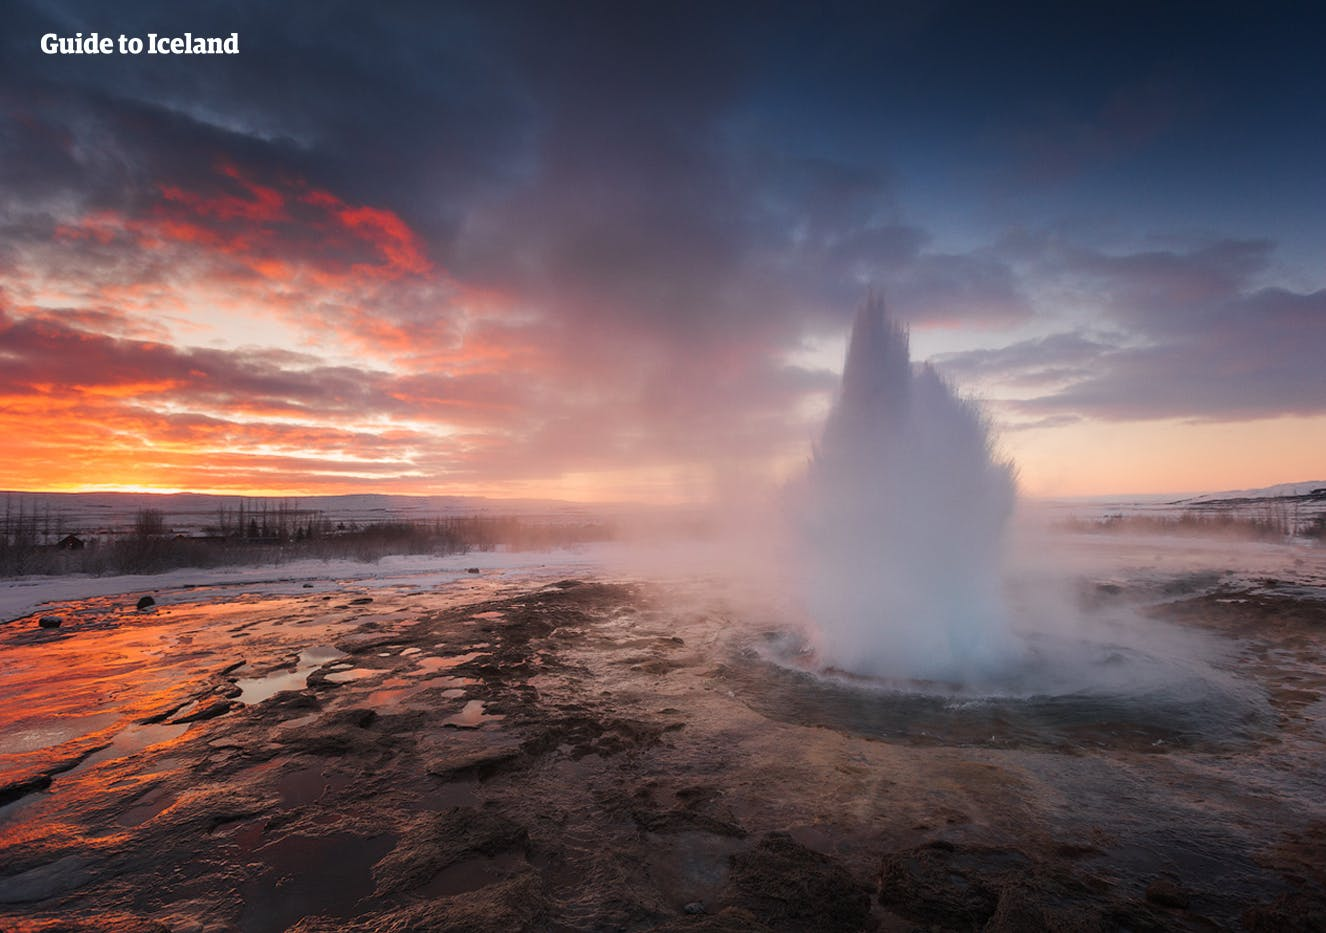 Haukadalur on the Golden Circle sightseeing route is home to the hot spring, Geysir and Strokkur.